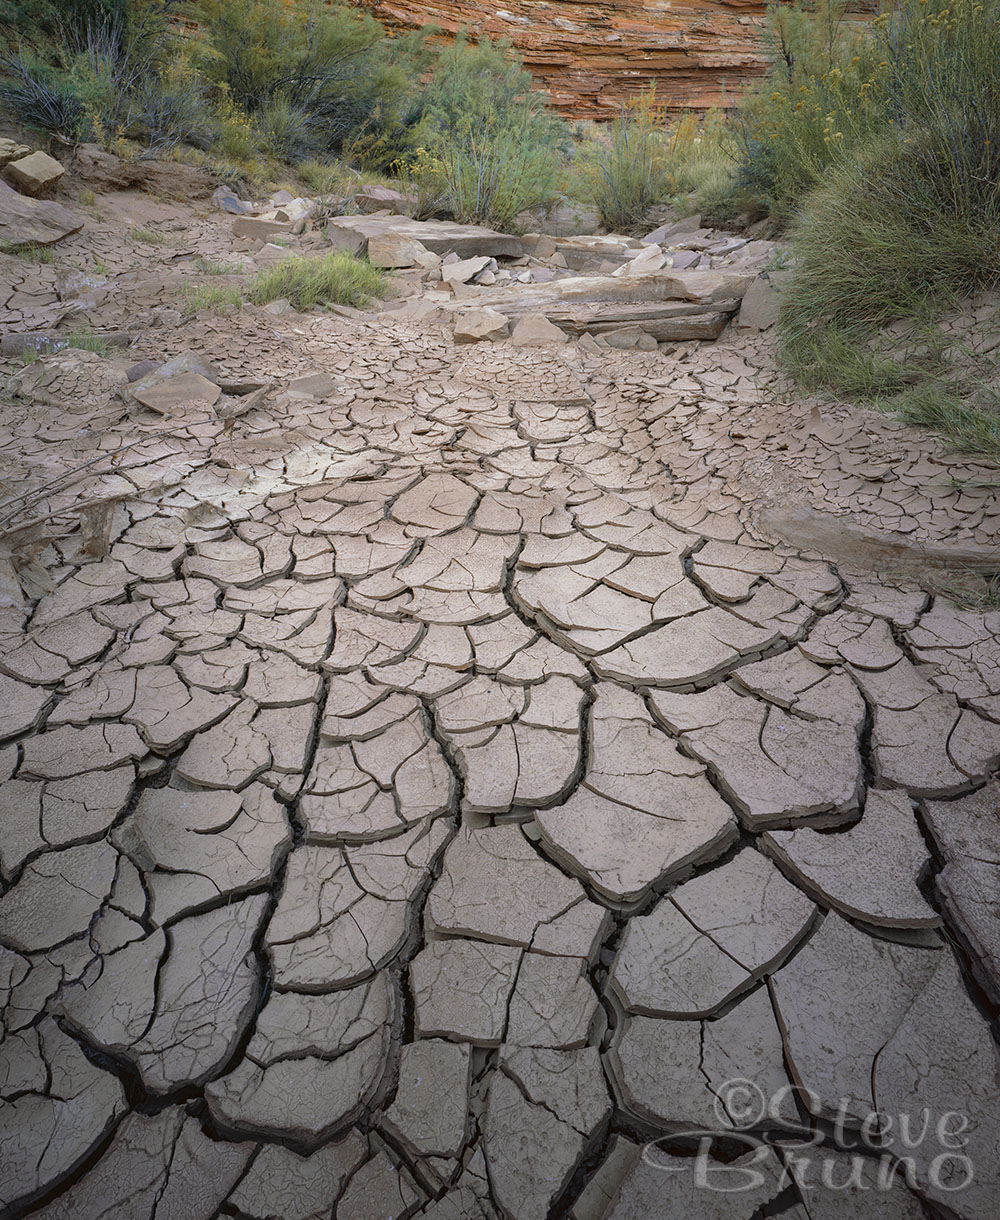 drought, desert, mud cracks, Arizona, Steve Bruno